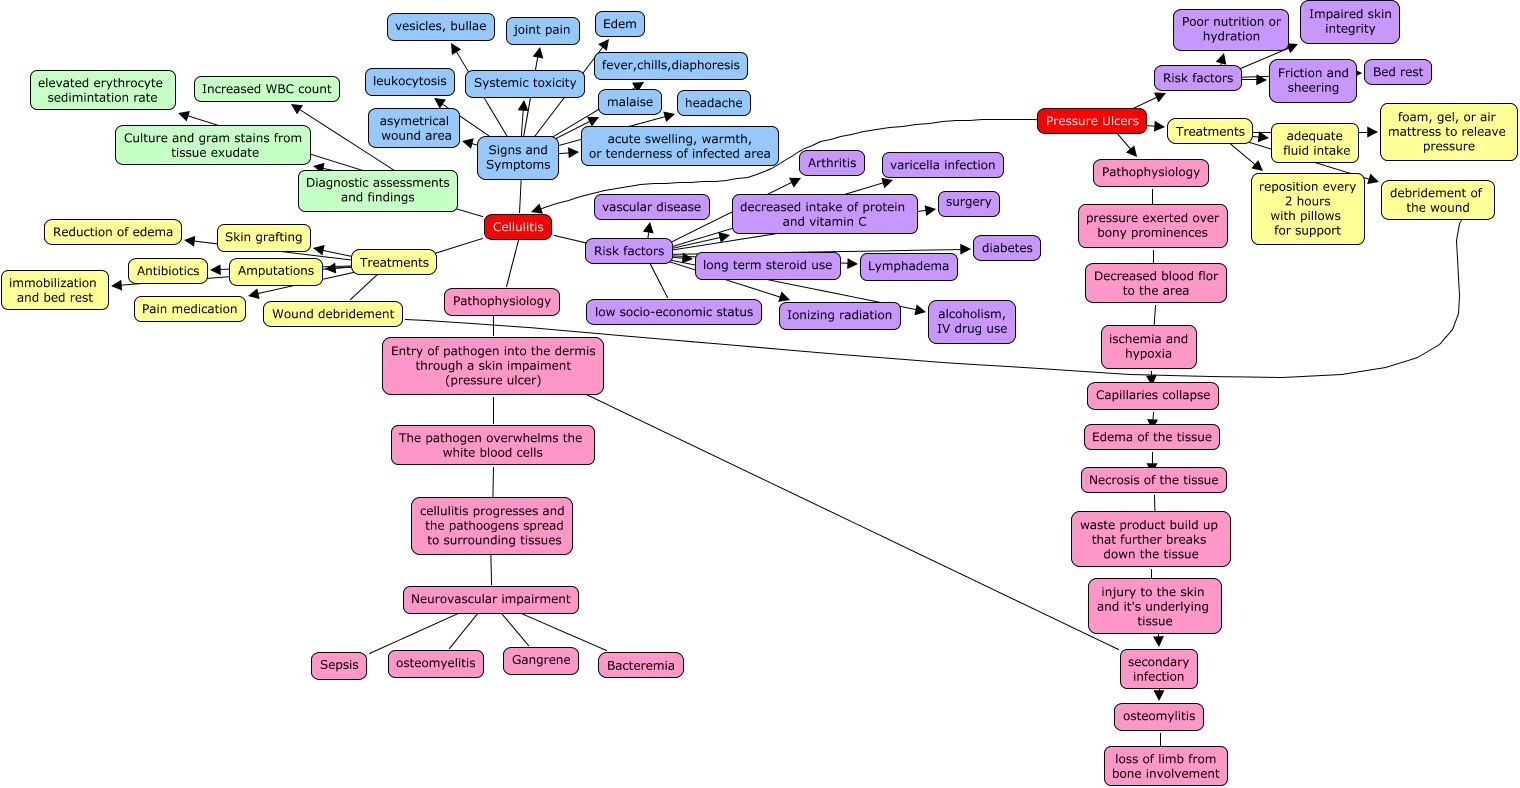 Cellulitis Pathophysiology Nursing Concept Map Foot Remedies